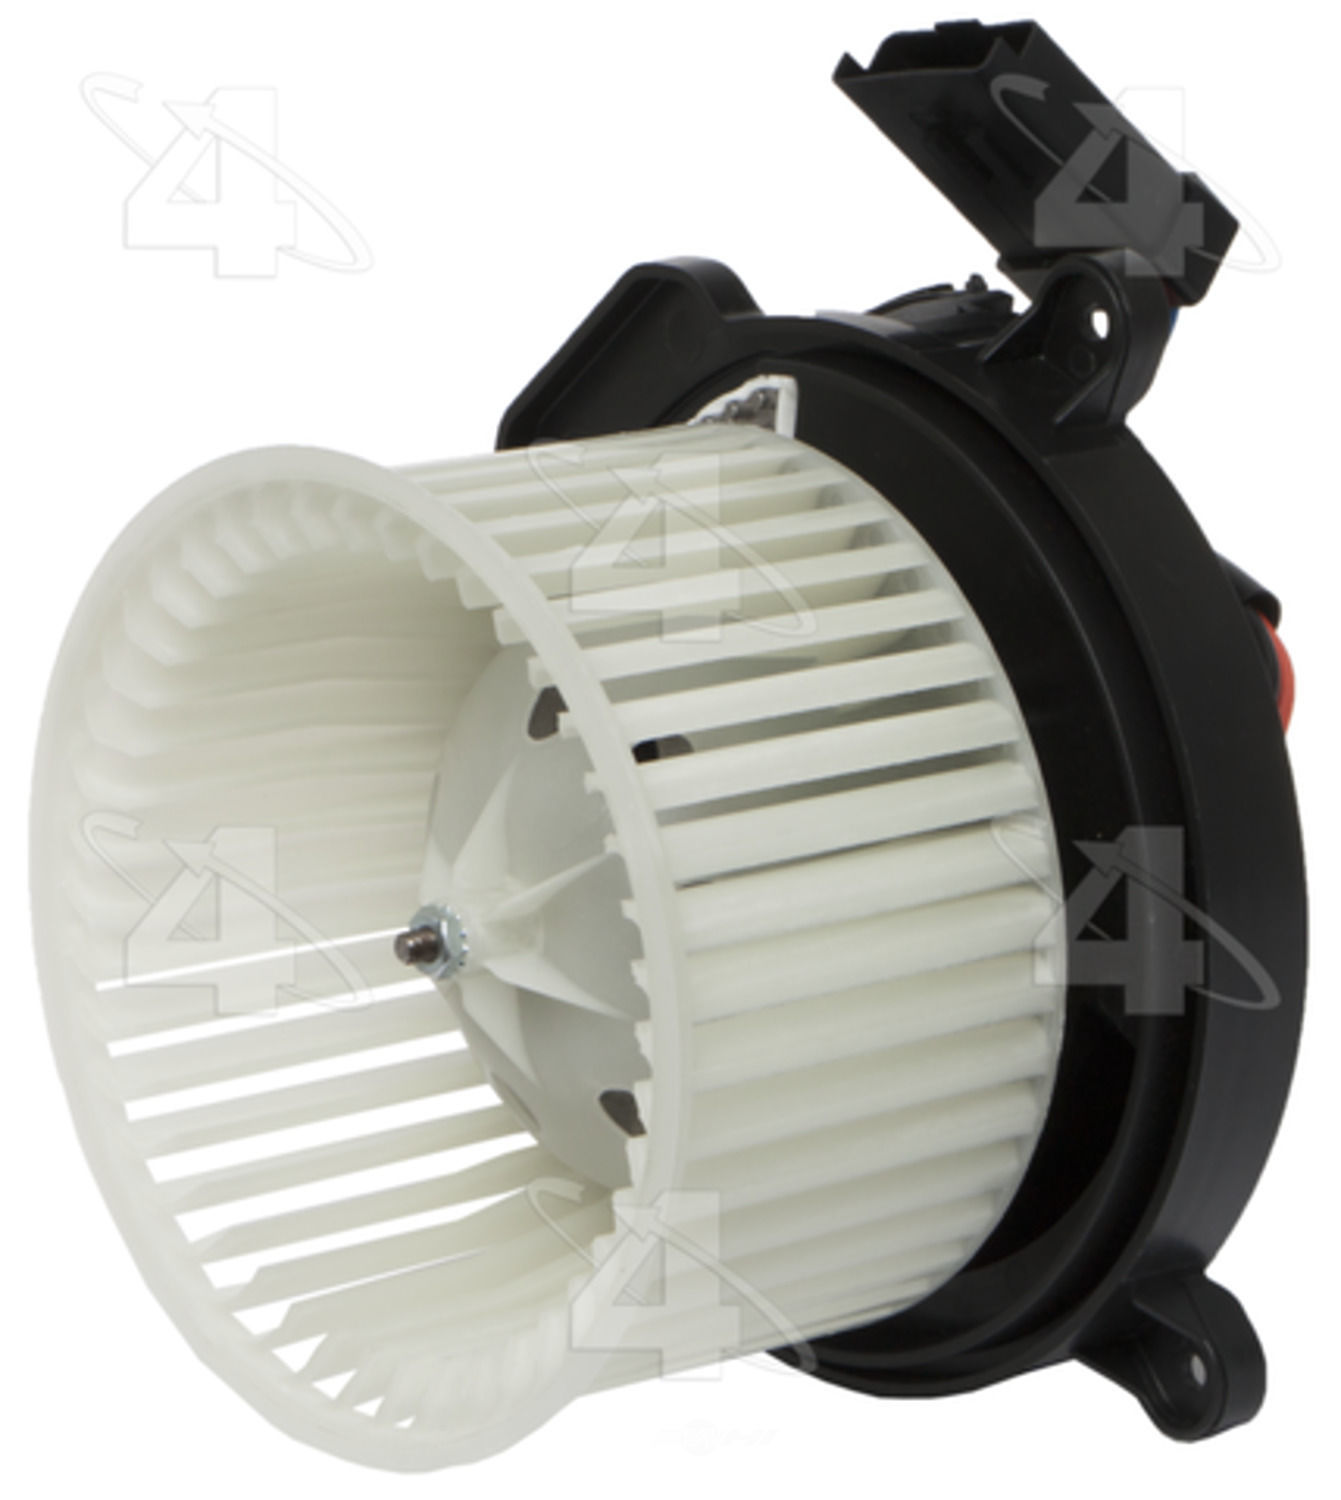 Hvac blower motor 4 seasons 75040 fits 02 07 freightliner for Oil for blower motor